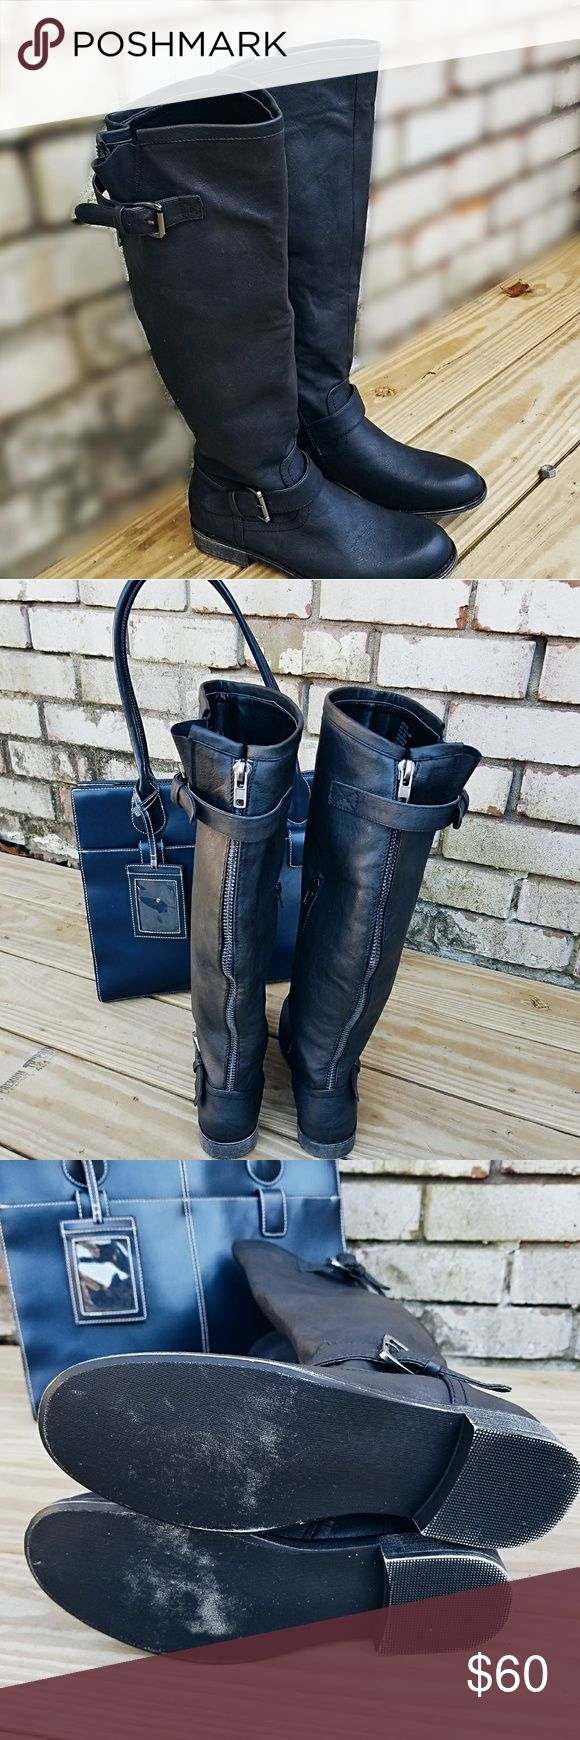 """⬇️PRICE DROP⬇️ NWOT Letoya Wide Calf Boots NWOT Letoya wide calf riding boots, bought and never worn because they didn't fit calf  accommodates anywhere between 16-18"""" calfs, don't have the box Shoe Dazzle Shoes Heeled Boots"""